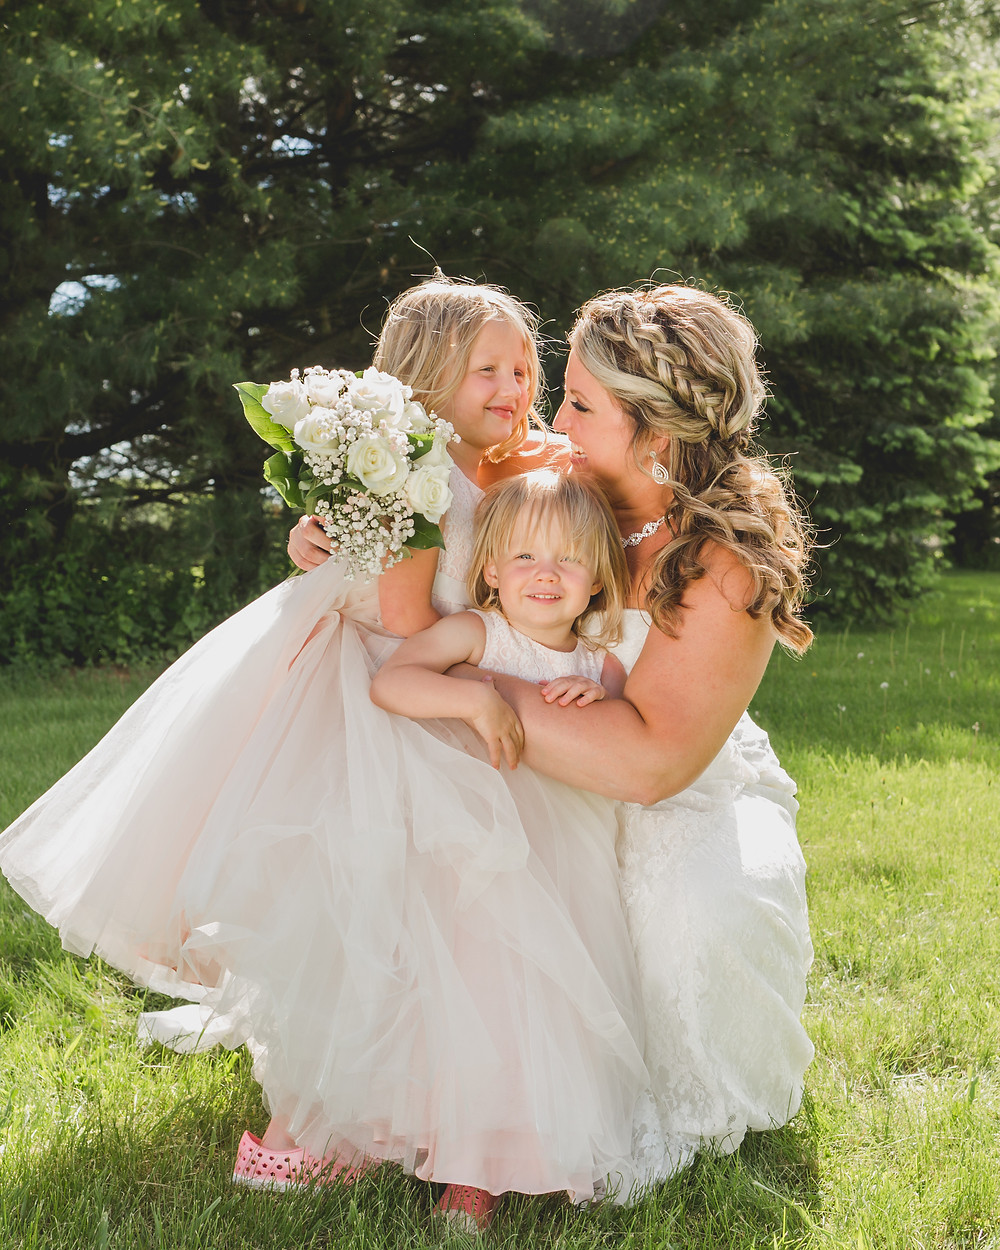 South Elgin wedding photography, flower girls, wedding photographer